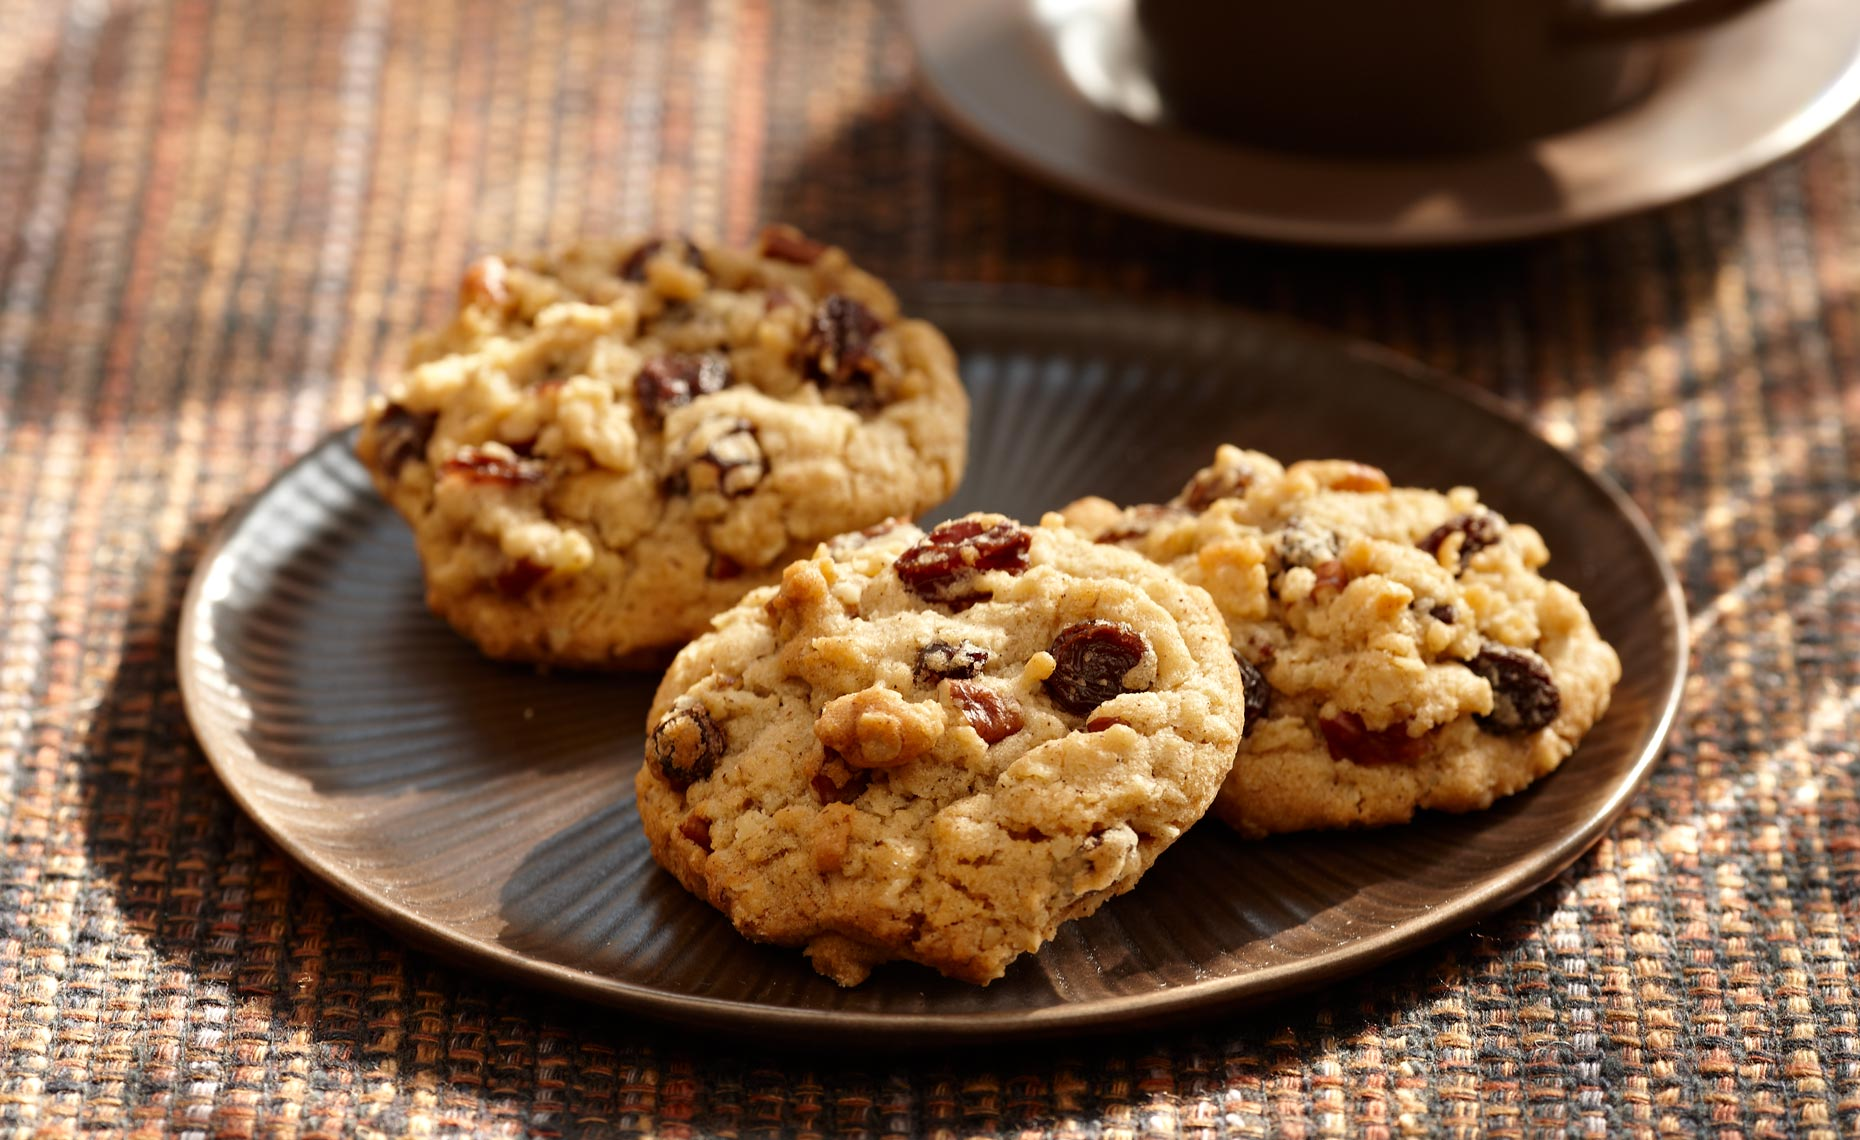 dessert-sweets-photographers-cookies-oatmeal-23